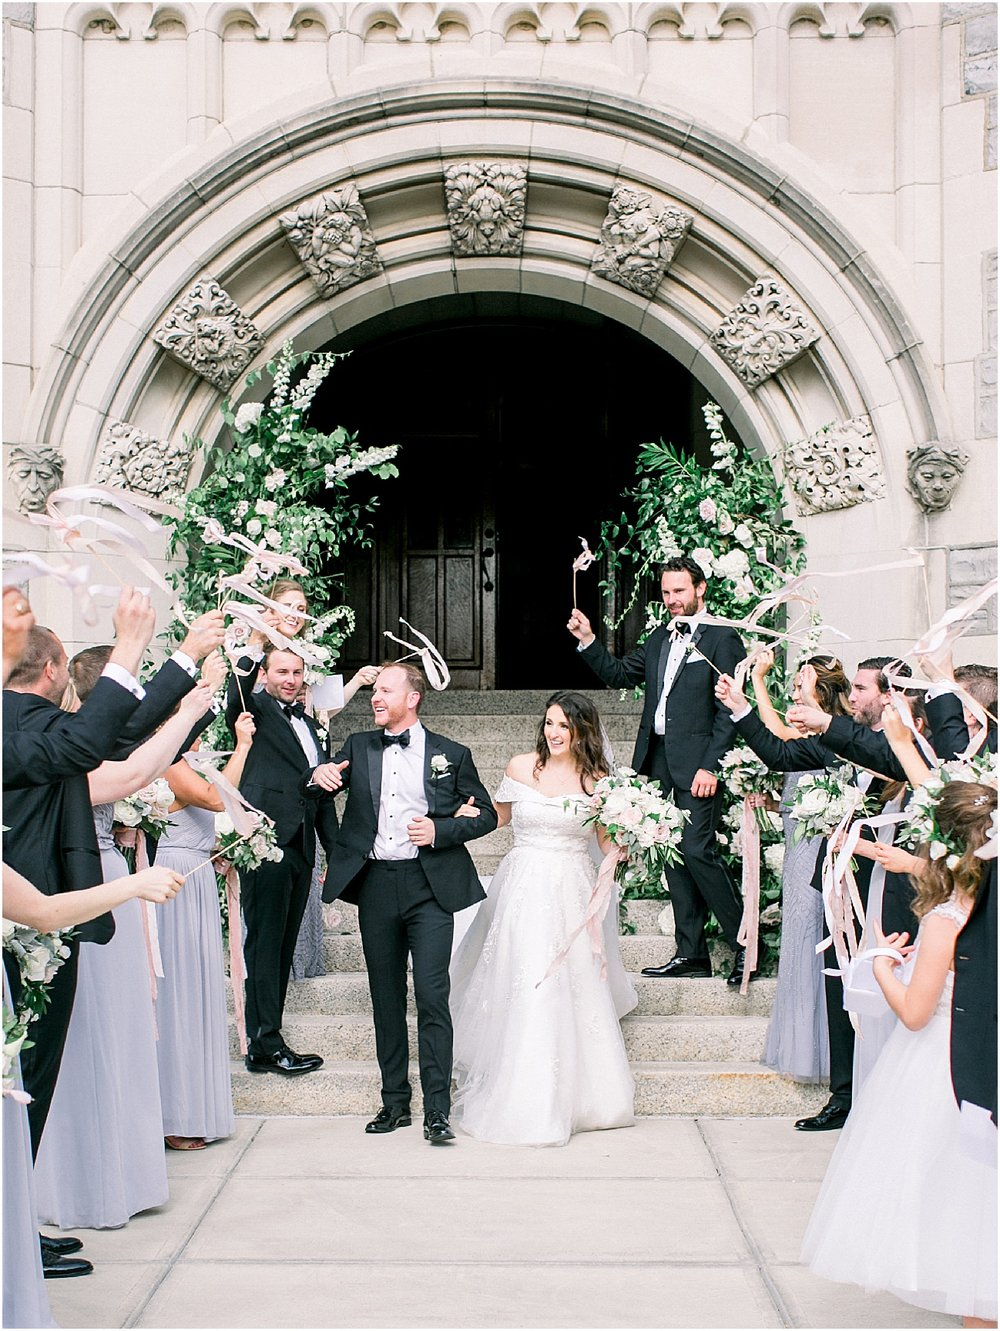 our_wedding_day_troy_NY_emma_willard_fairy_tale_royal_neutral_beauty_and_the_beast_moped_private_estate_cape_cod_boston_wedding_photographer_meredith_jane_photography_chris_kerr_photo_1977.jpg